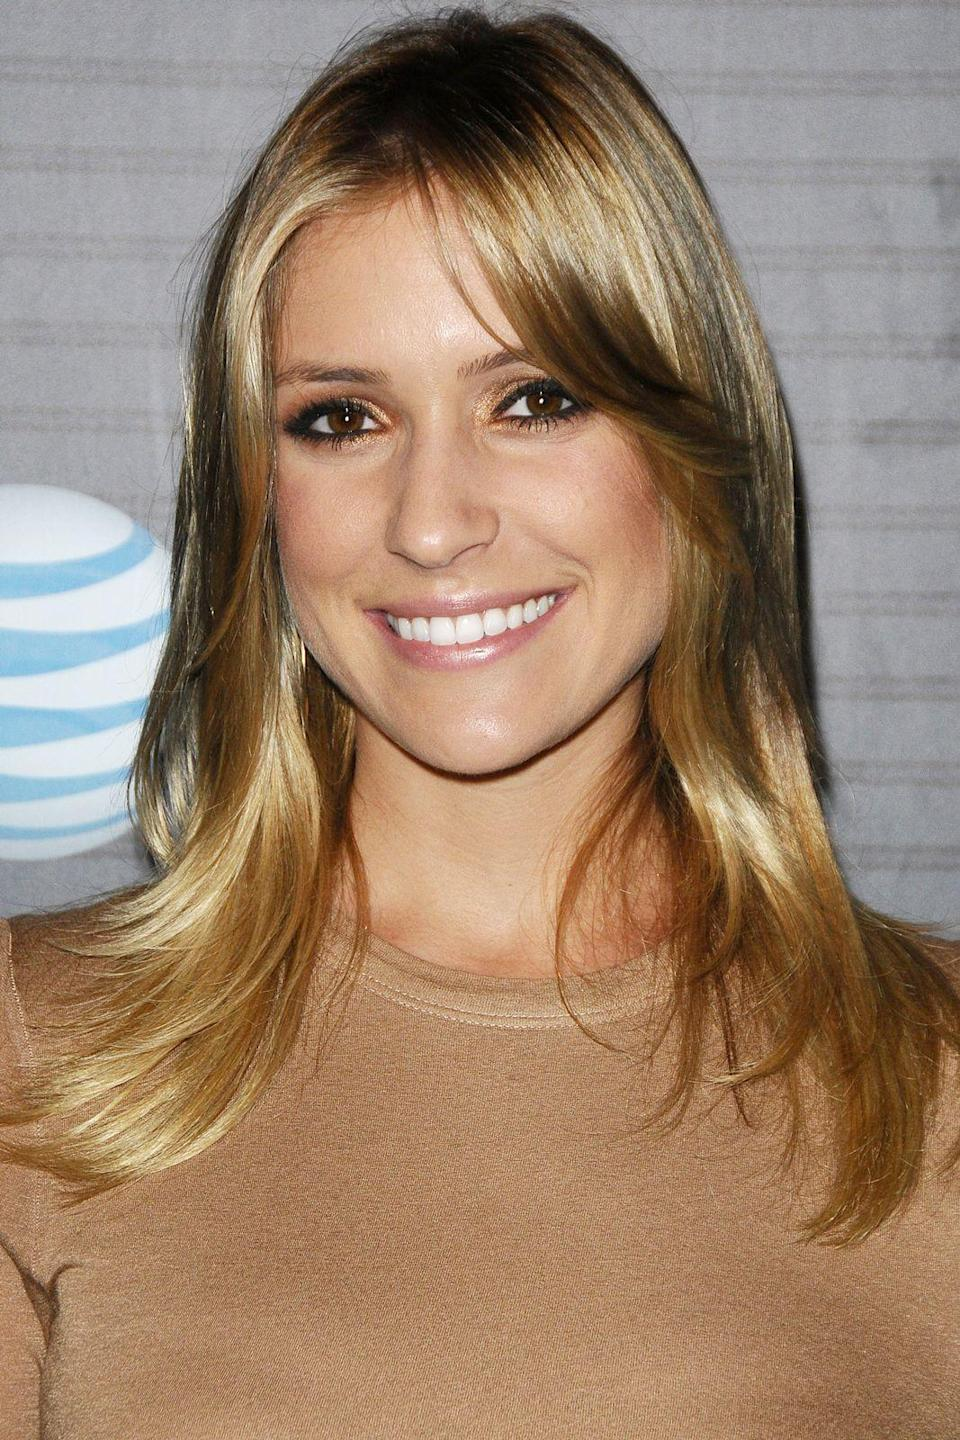 """<p><strong>Blackberry Torch Launch Party, 2010</strong></p><p>""""This is actually right when I met [husband] Jay [Cutler], because I met him when my hair was a little darker. The dark was fun, but I do like myself better blonde. [Cutler] likes me better blonde [too].""""</p><span class=""""copyright"""">Photo: Jason LaVeris.</span>"""